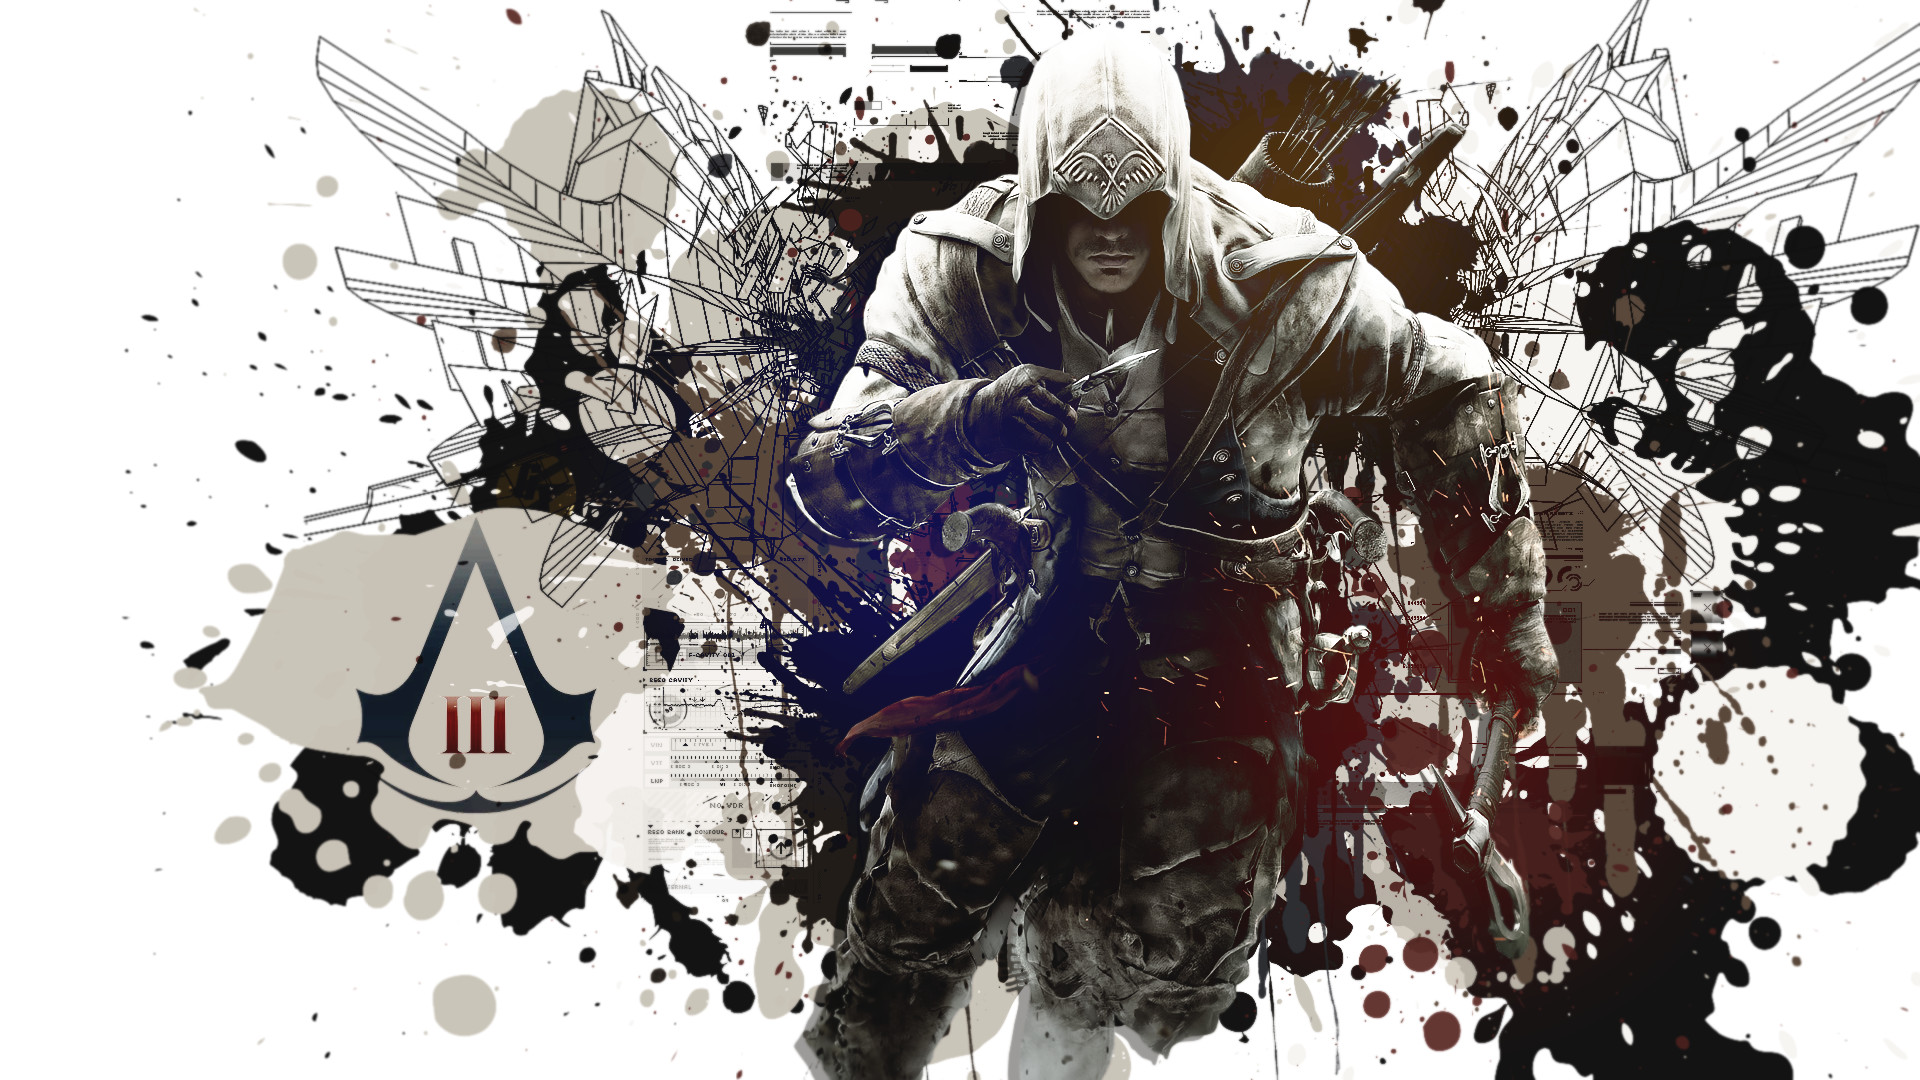 Assassins Creed 3 Wallpaper 1920x1080 80 Images